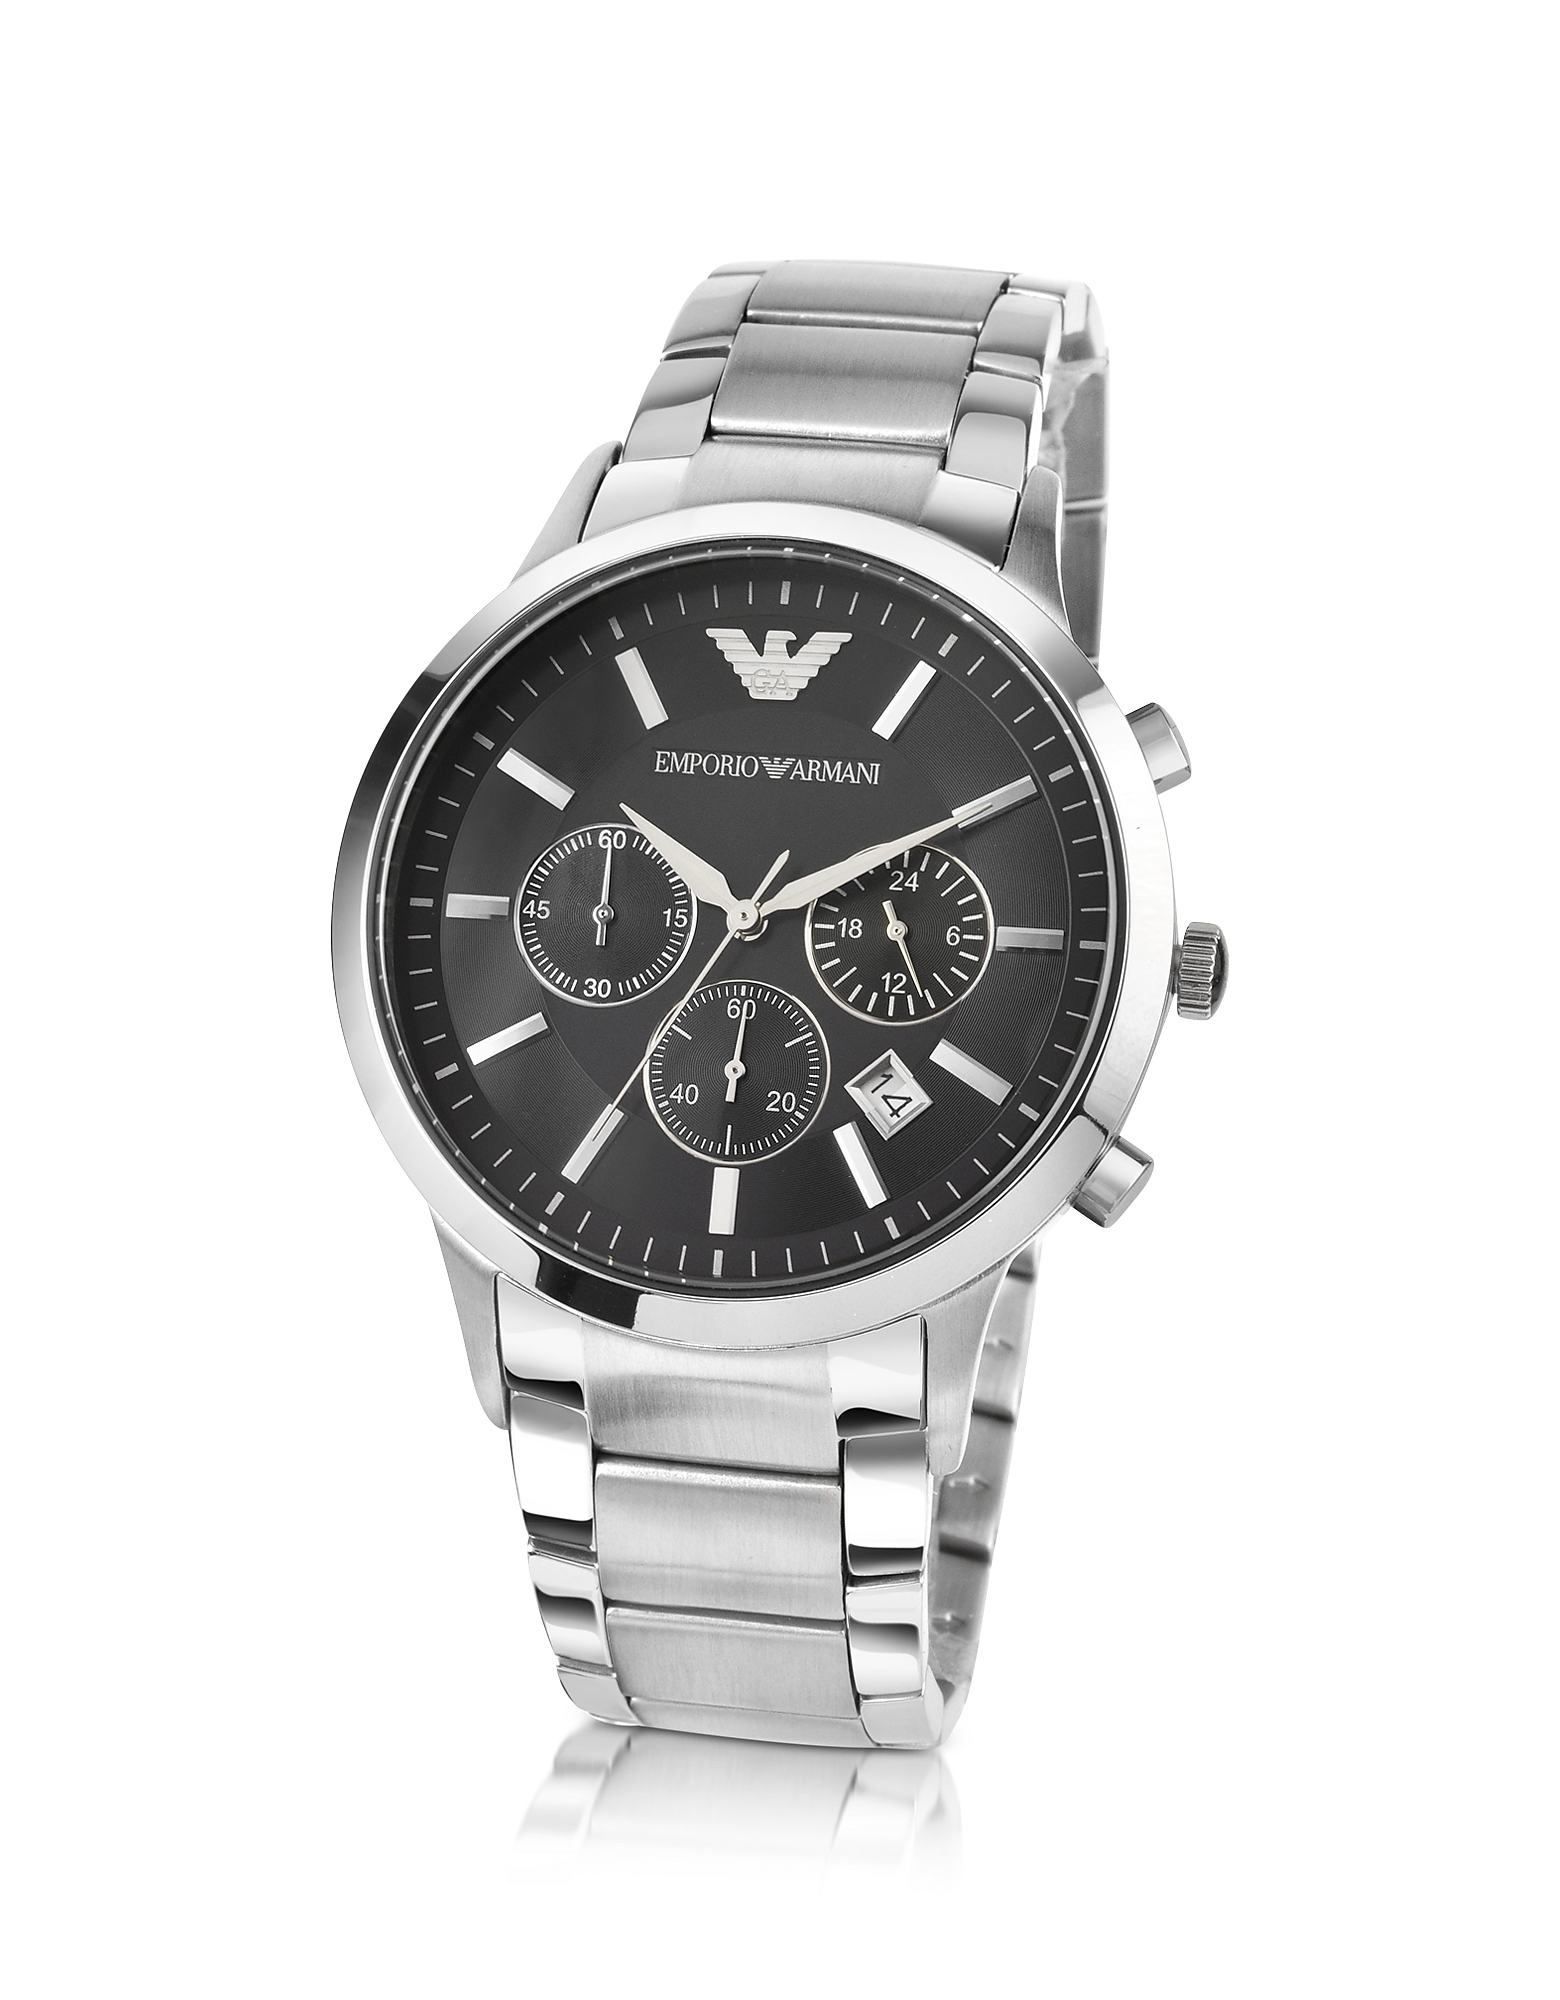 Emporio Armani Men's Watches, Men's Black Dial Stainless Steel Chrono Watch